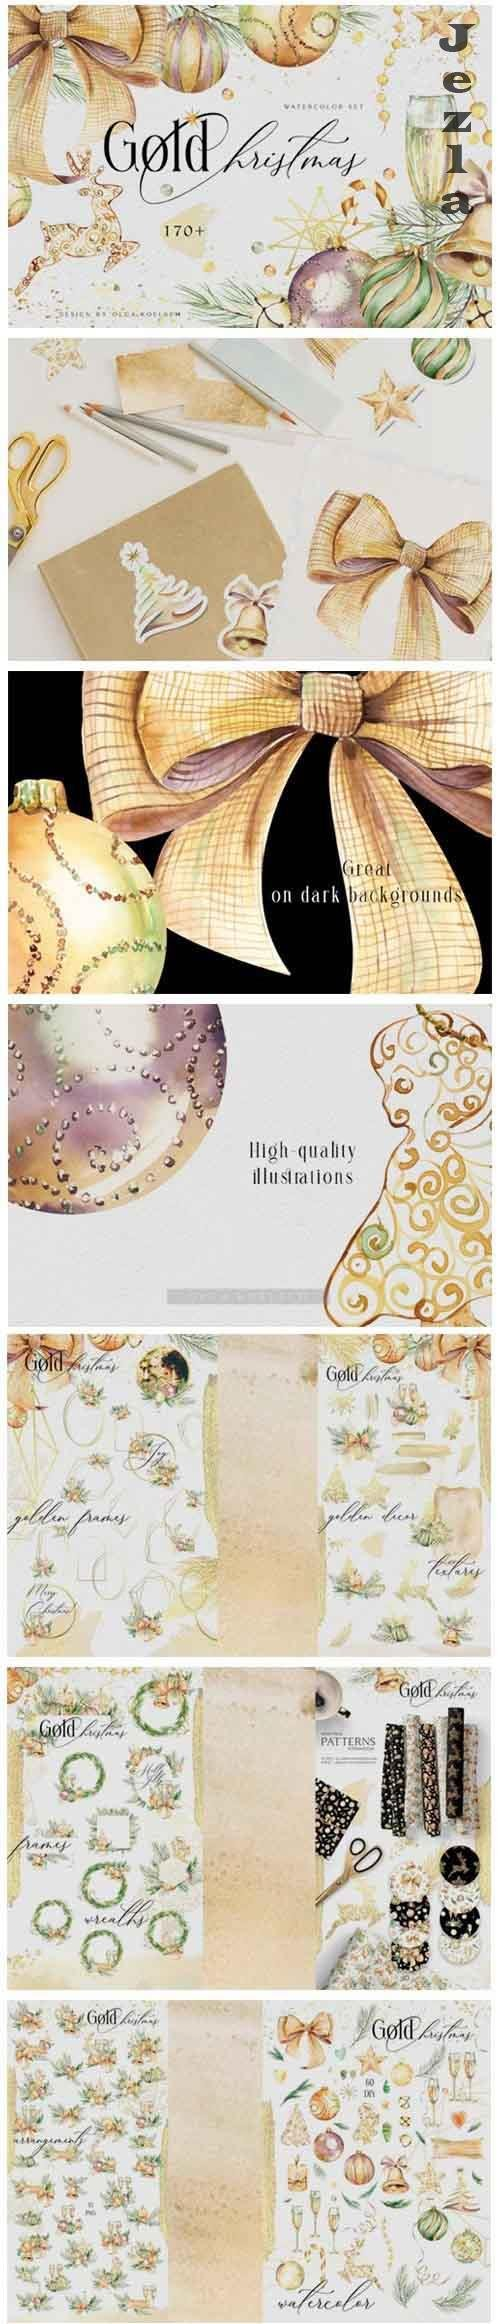 Gold Christmas watercolor collection - 977270